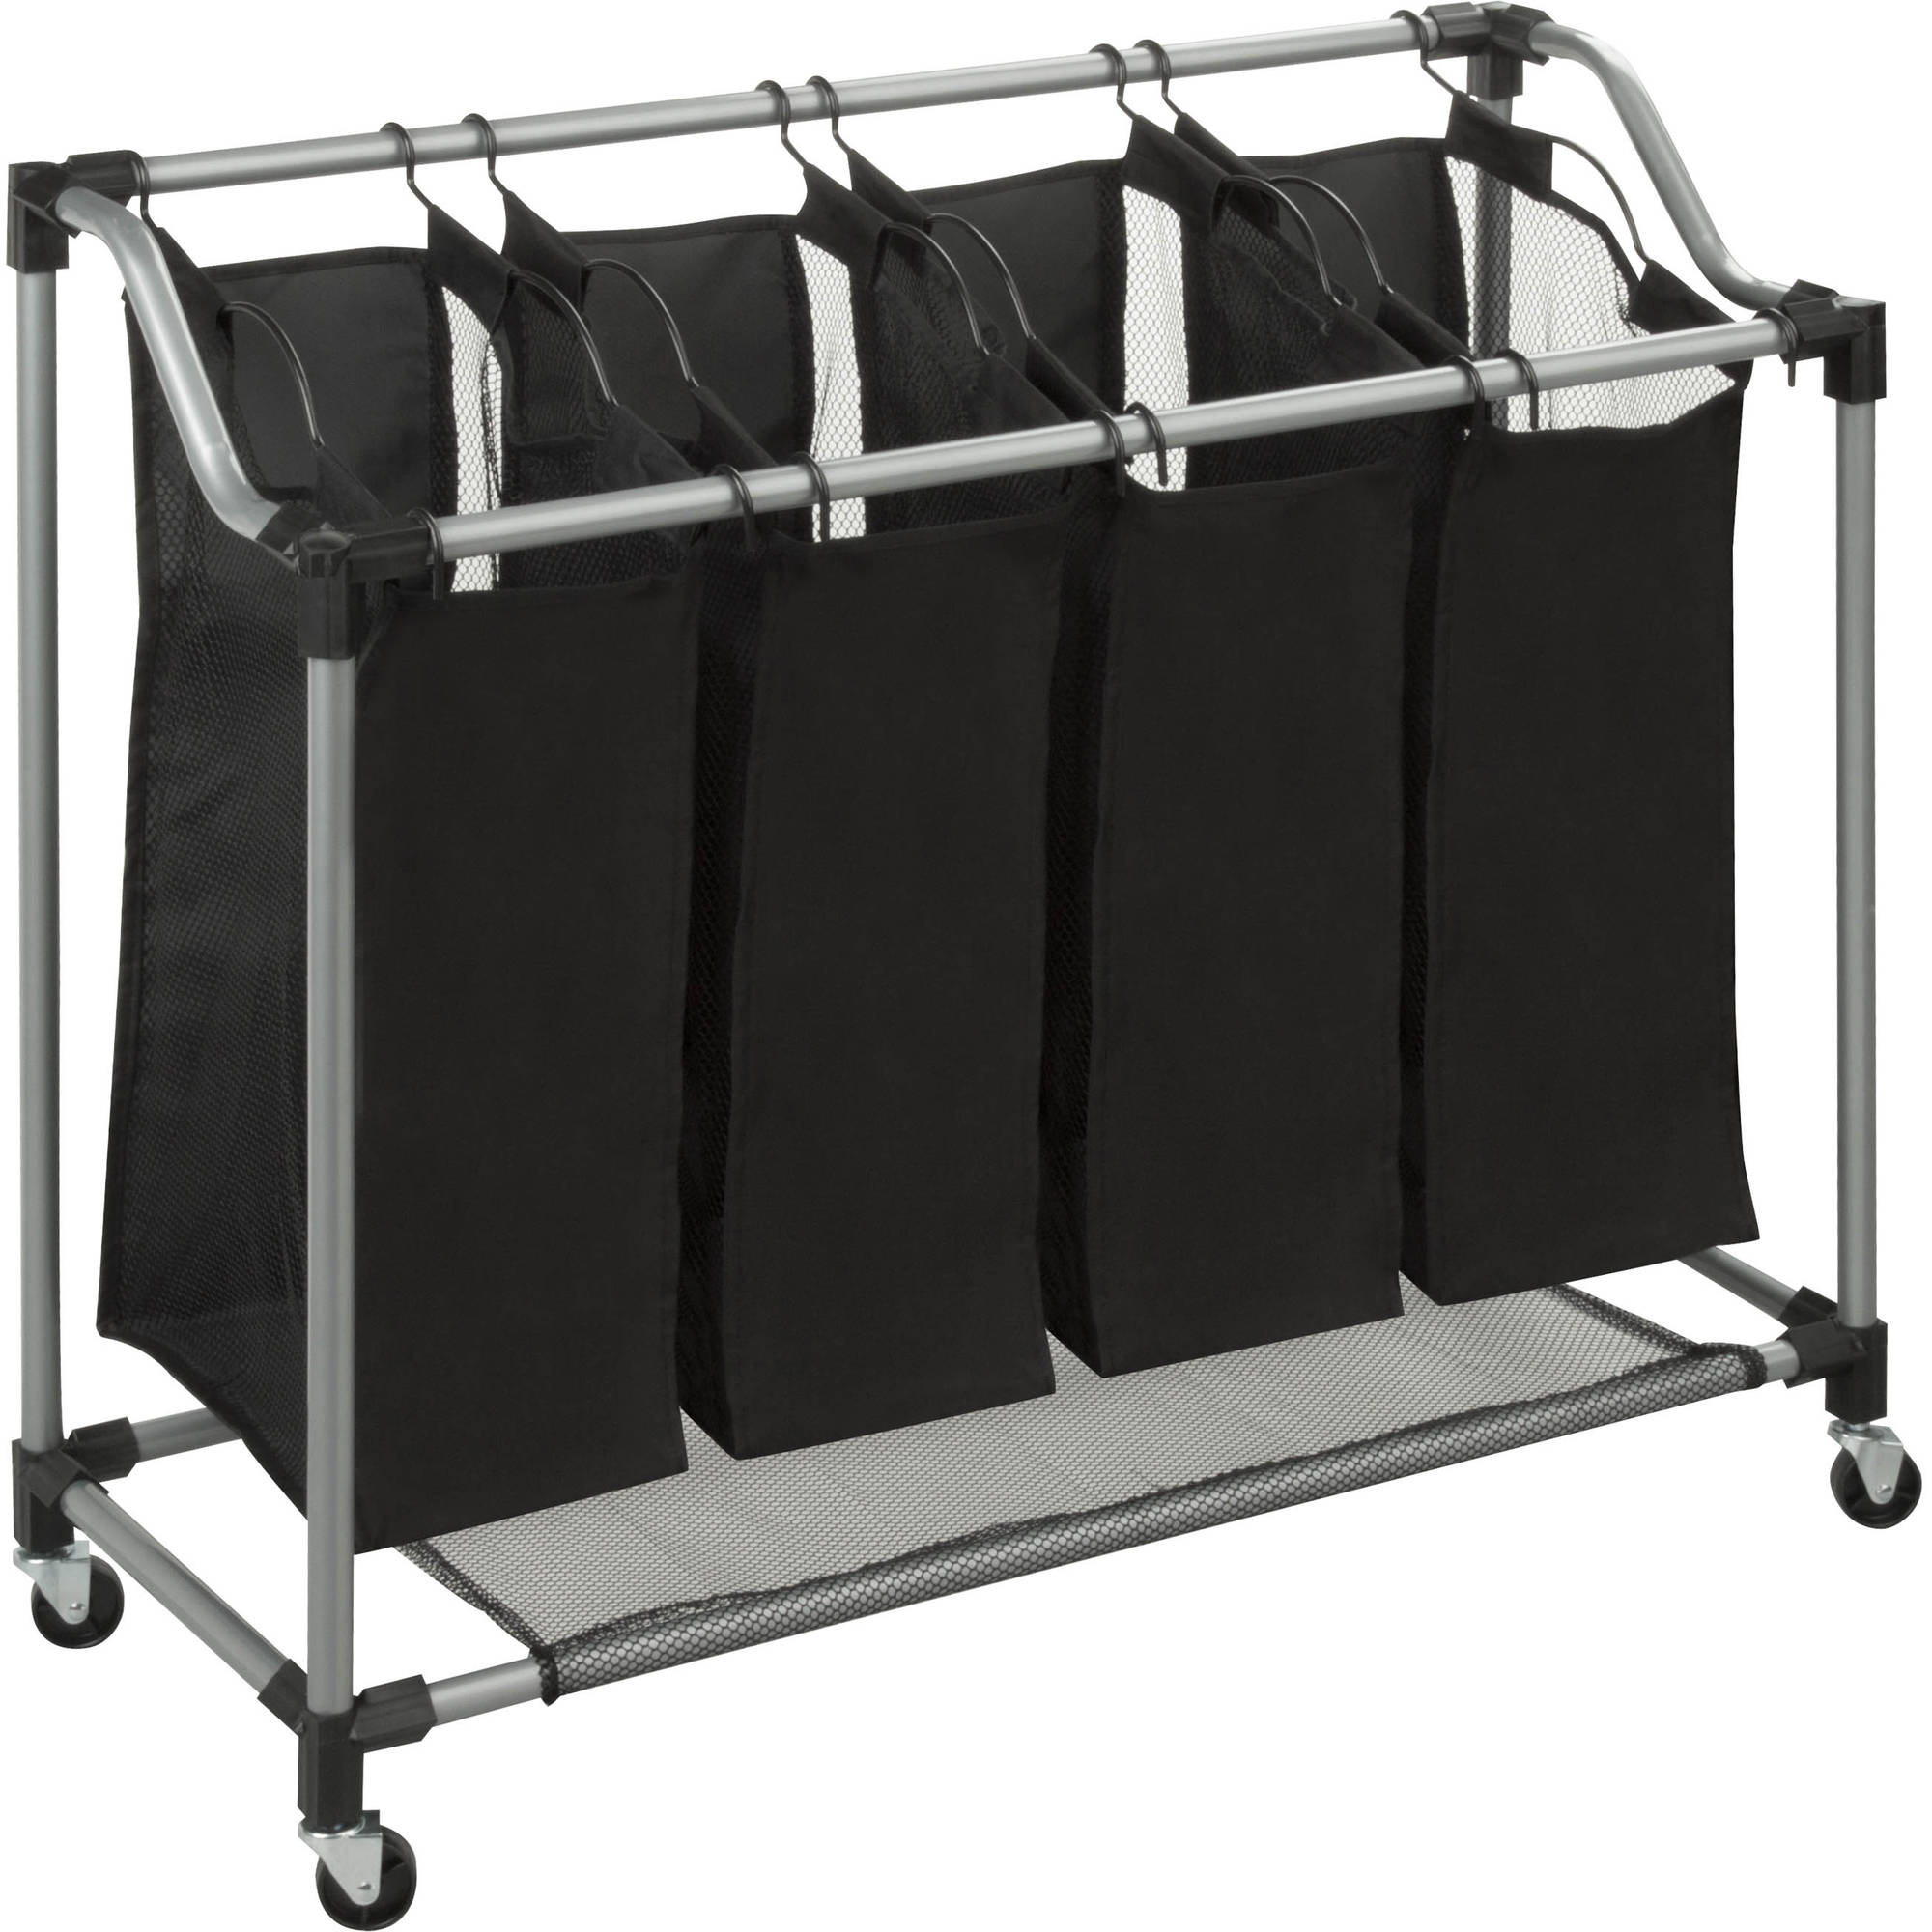 Honey Can Do Deluxe Quad Laundry Sorter with Removabler Bags, Black/Gray